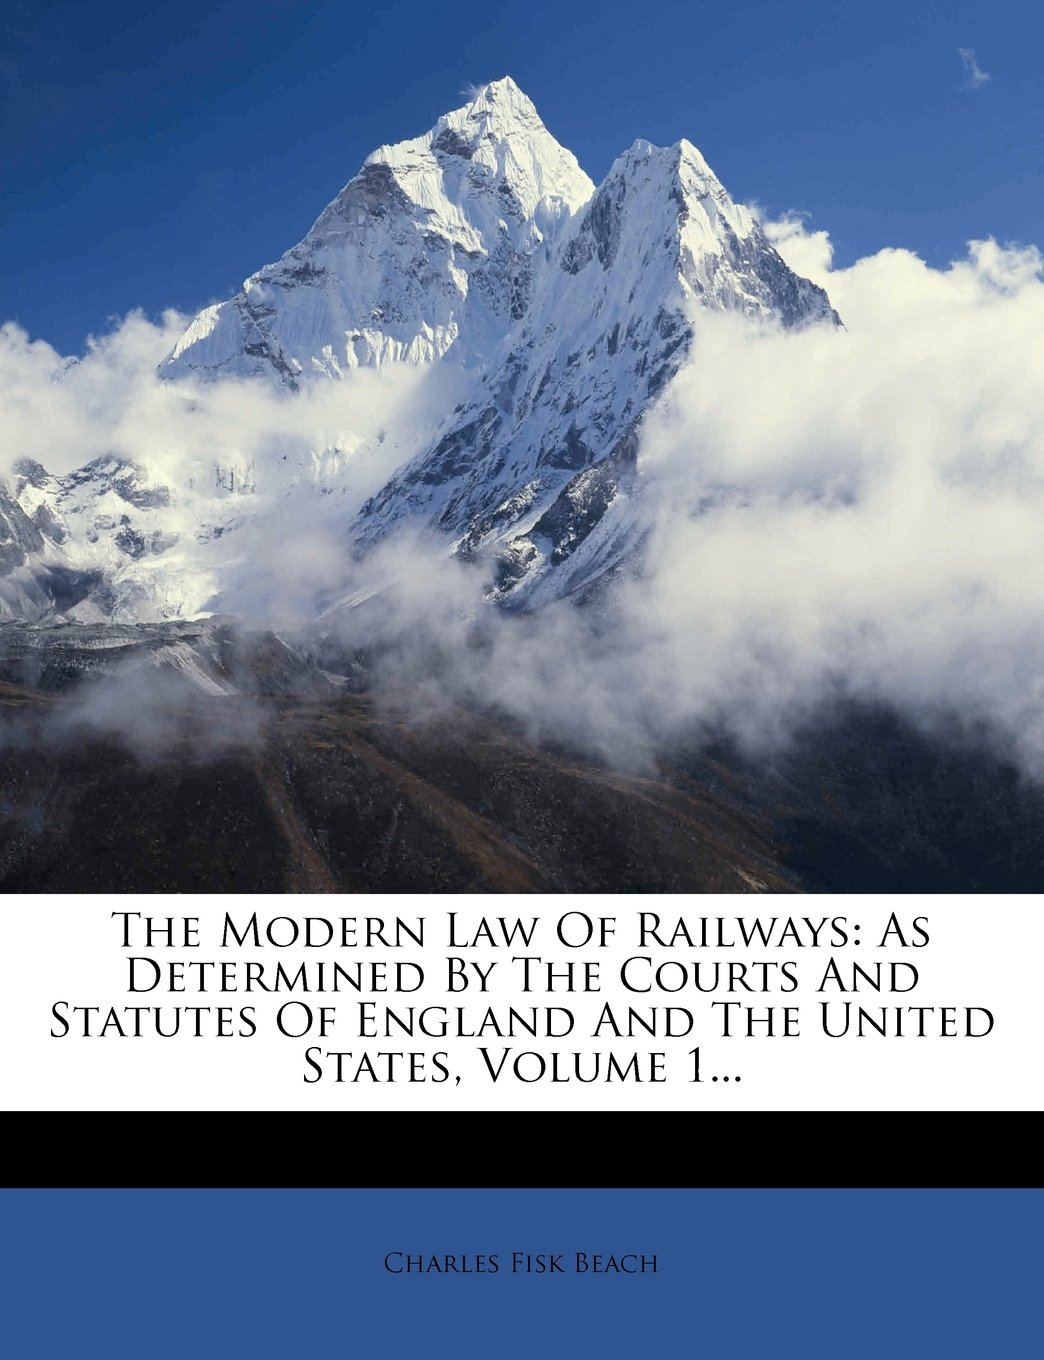 Read Online The Modern Law Of Railways: As Determined By The Courts And Statutes Of England And The United States, Volume 1... pdf epub